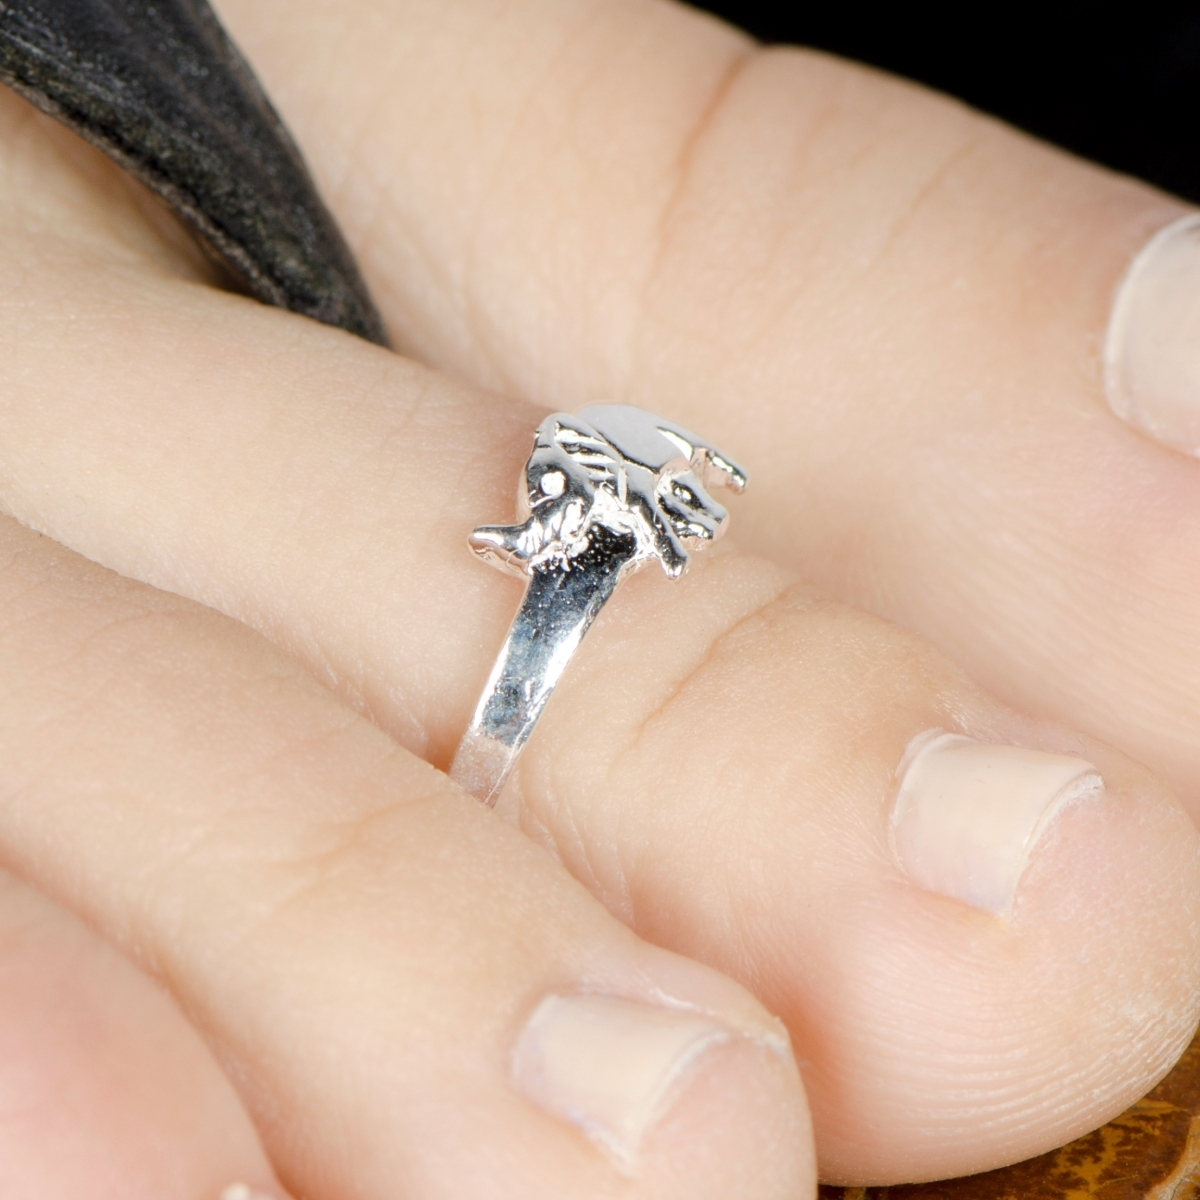 Quiet Wedding: Elephant Diamond Wedding Ring Intended For Current Elephant Toe Rings (View 11 of 15)